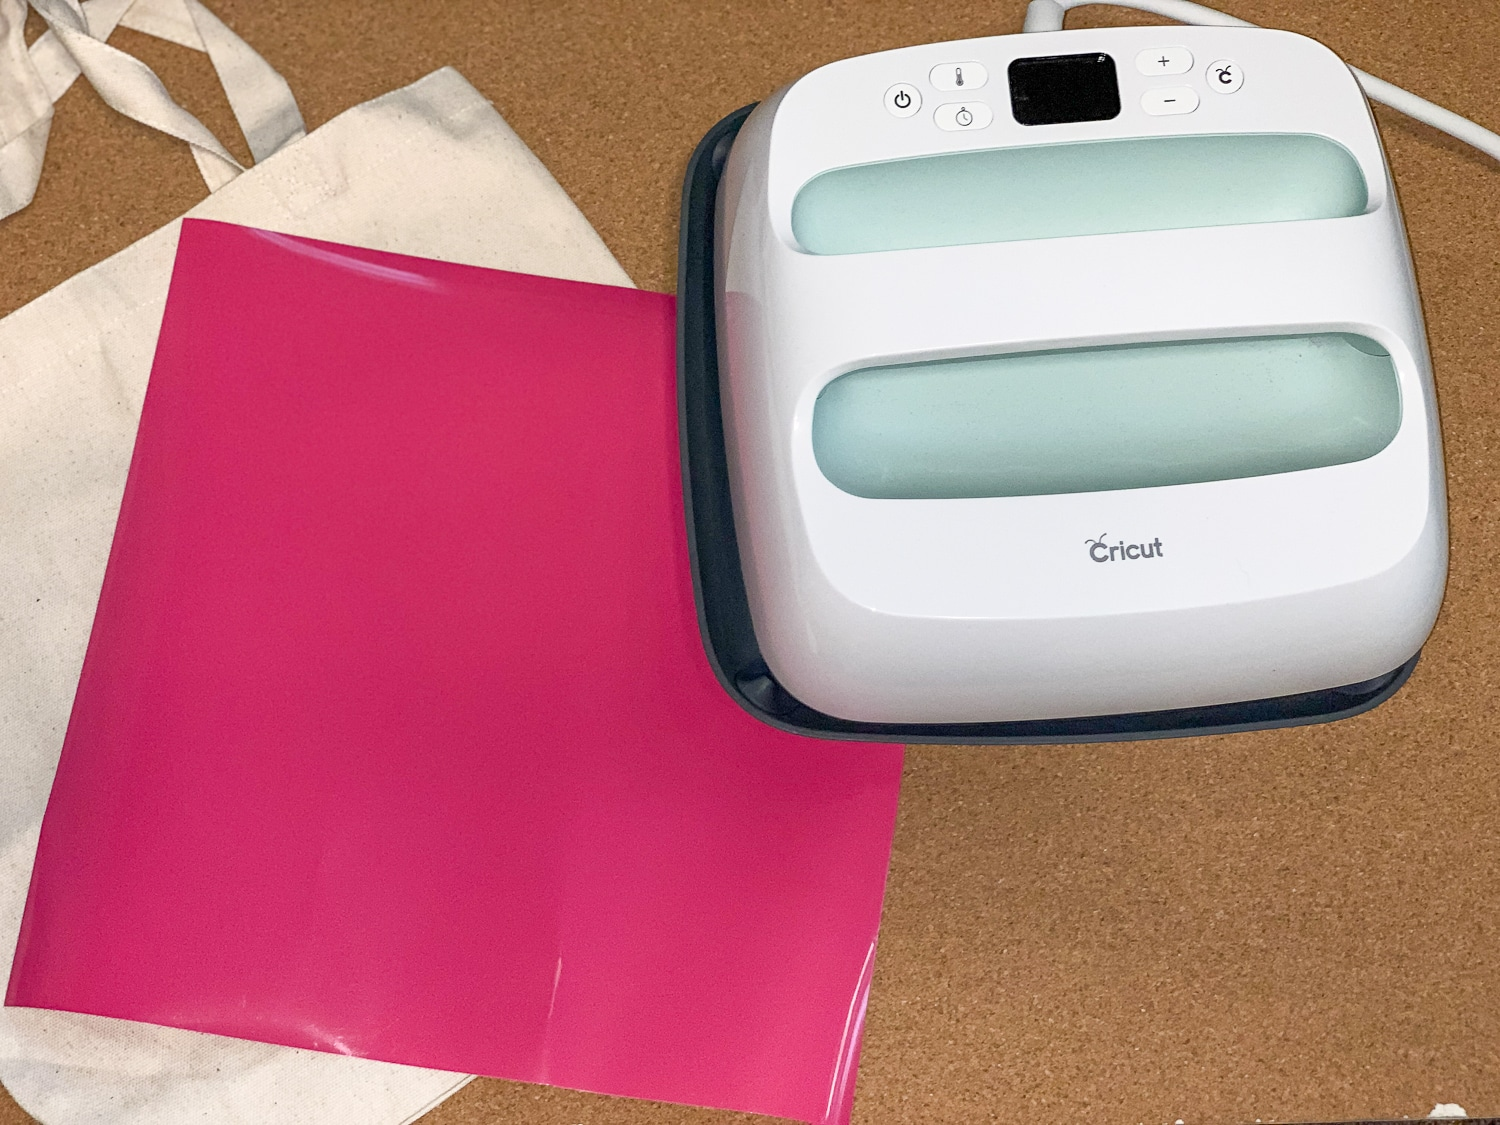 In this post, you will learn How To Make A Tote Bag Your Own With The EasyPress 2 Plus, bonus you will get a free cut file to do it! #cricutmade #cricuteasypress #easypress2 #cricut